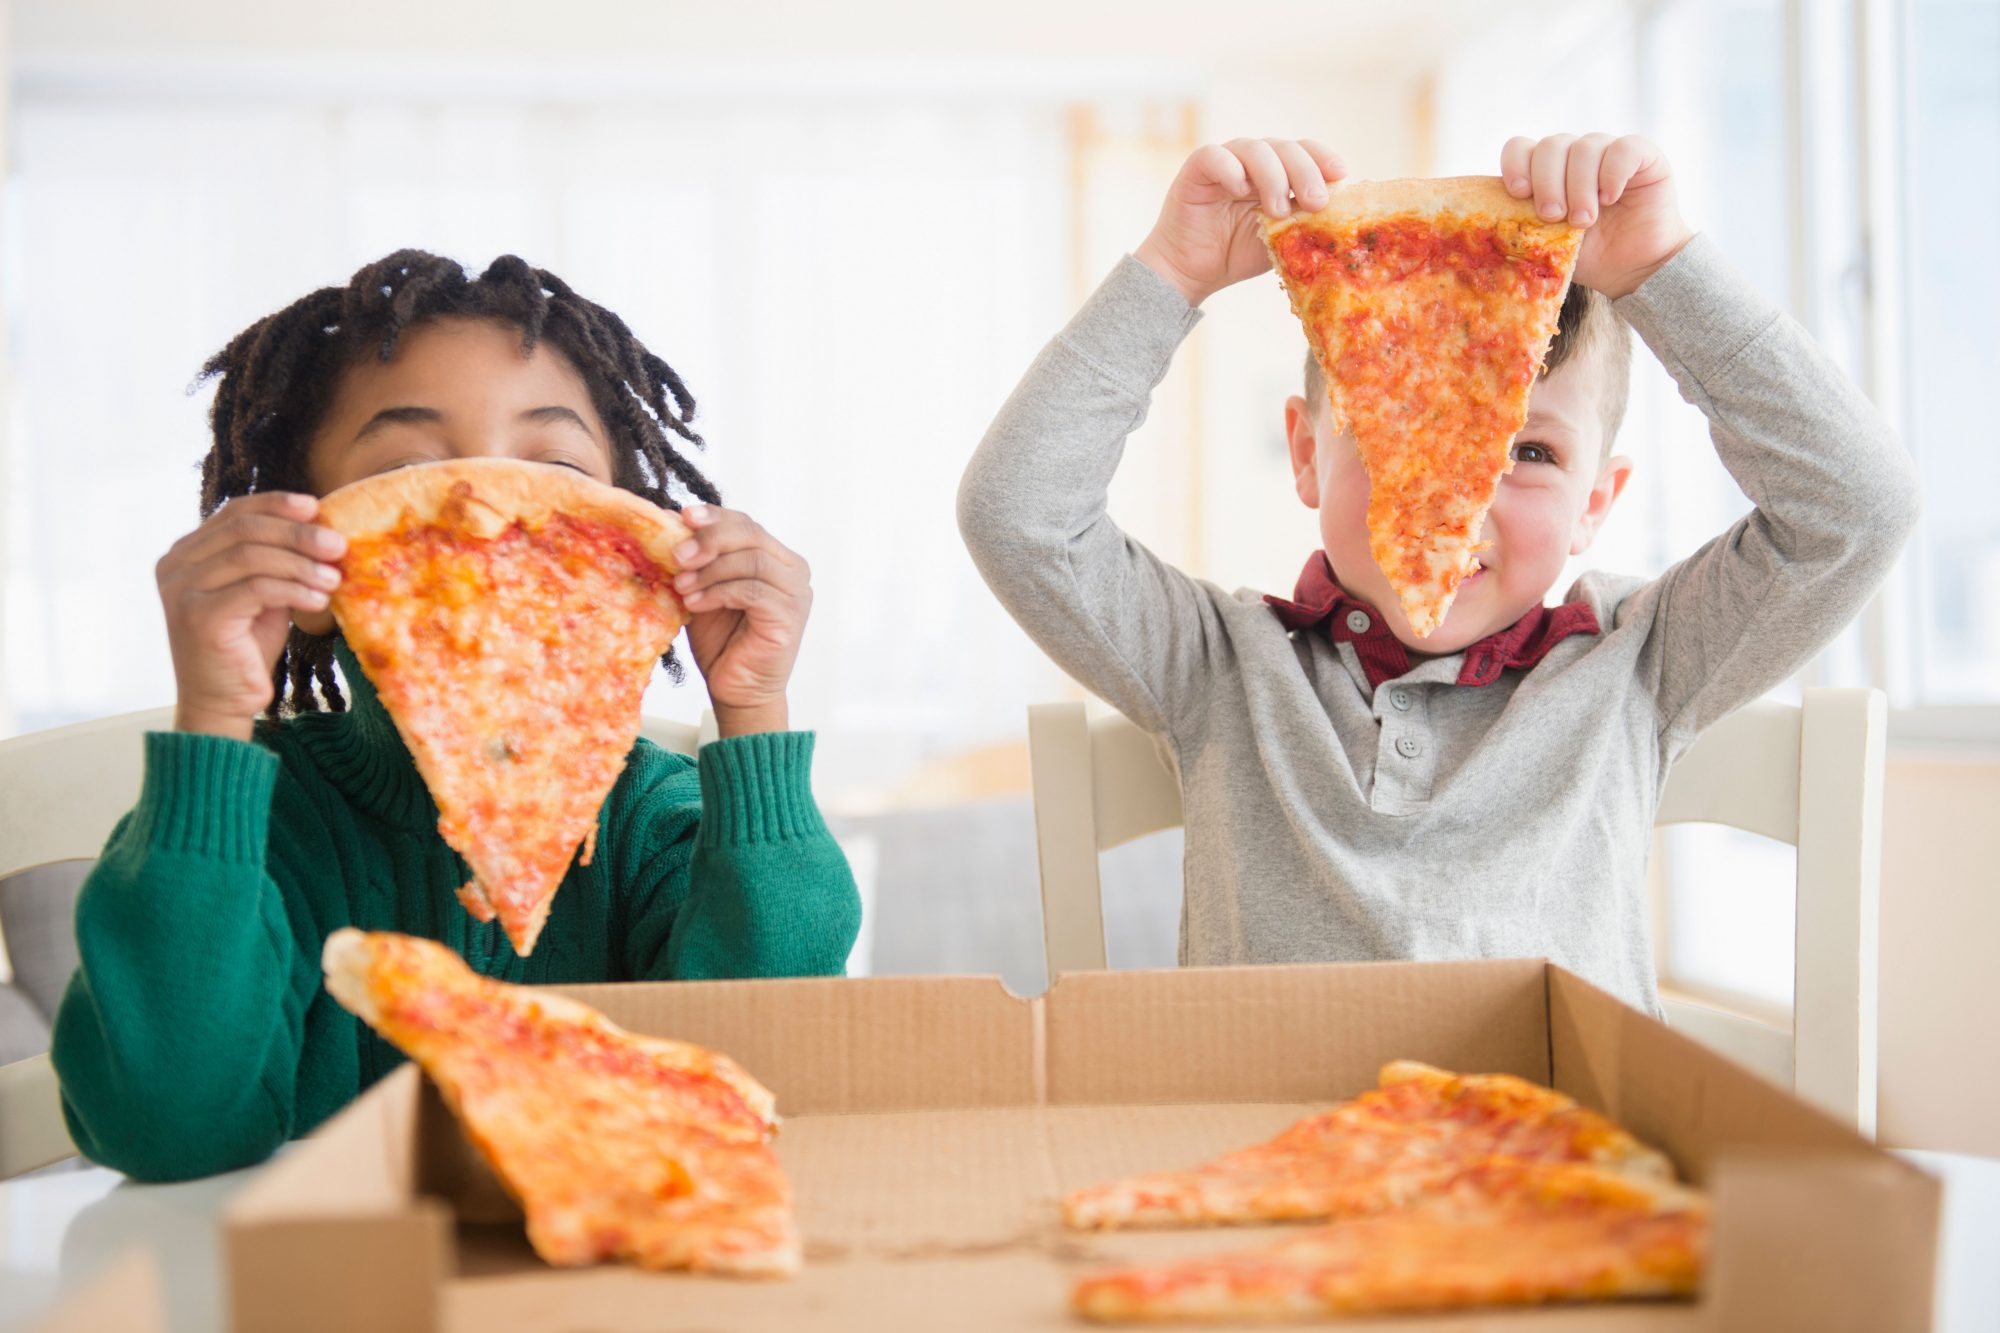 Young Boys Eating Pizza